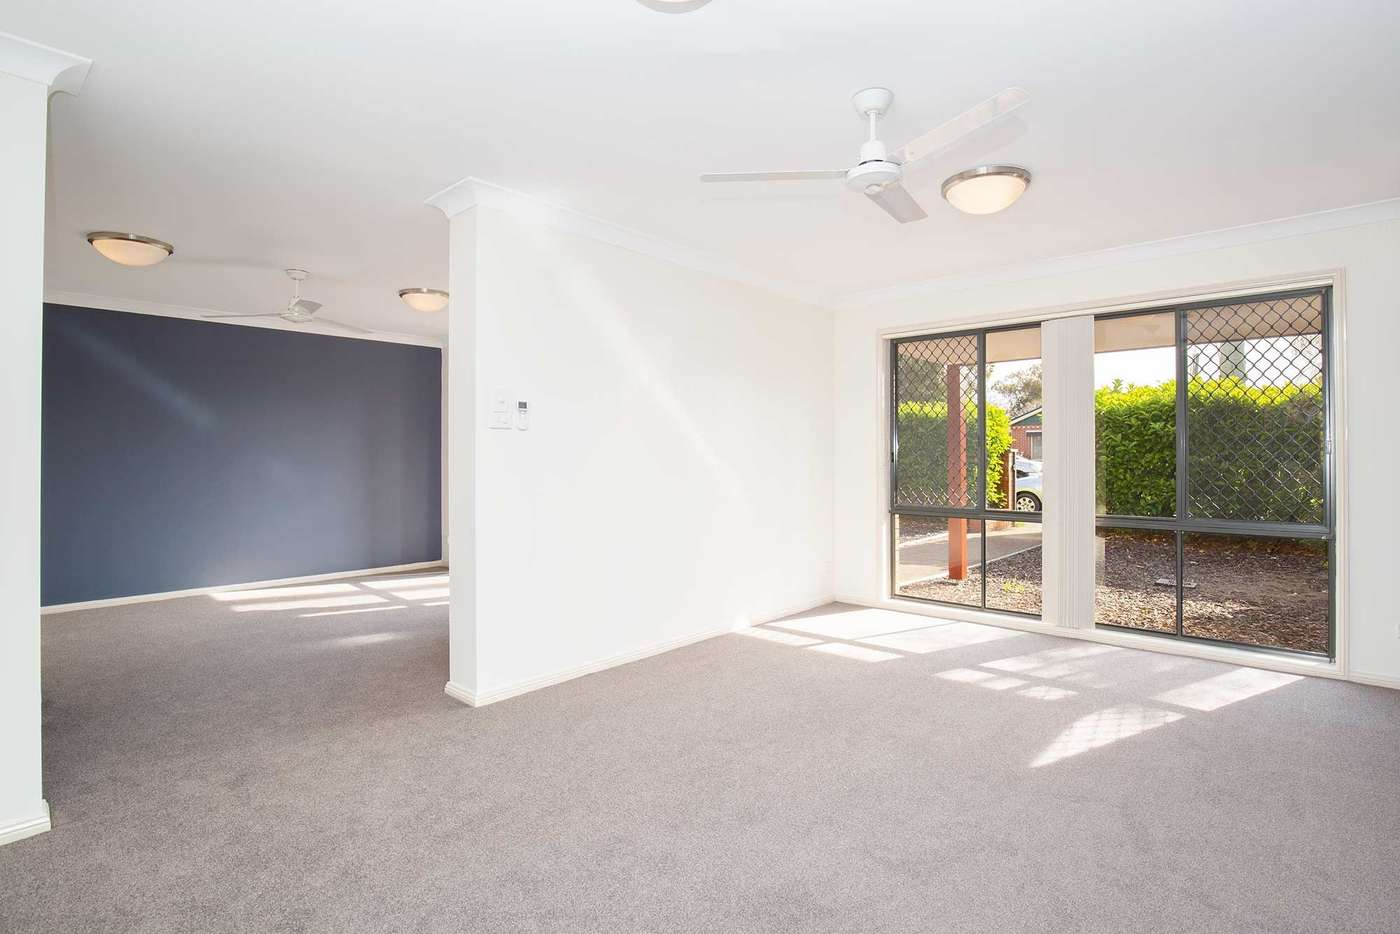 Fifth view of Homely townhouse listing, 325 Brunker Road, Adamstown NSW 2289